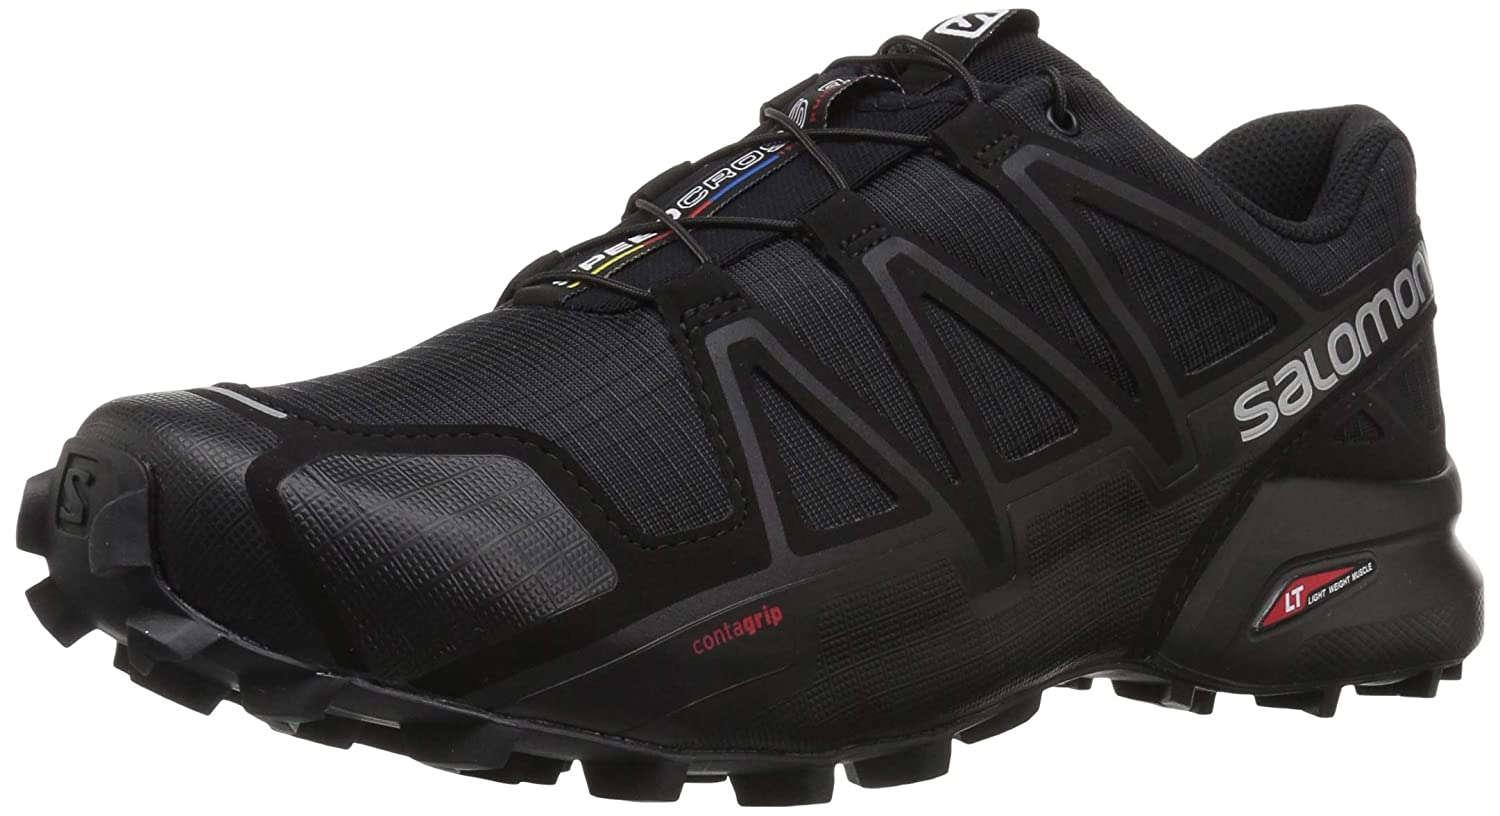 Salomon Men s Speedcross 4 Trail Running Shoe,Black Black Black Metallic,US 13 M